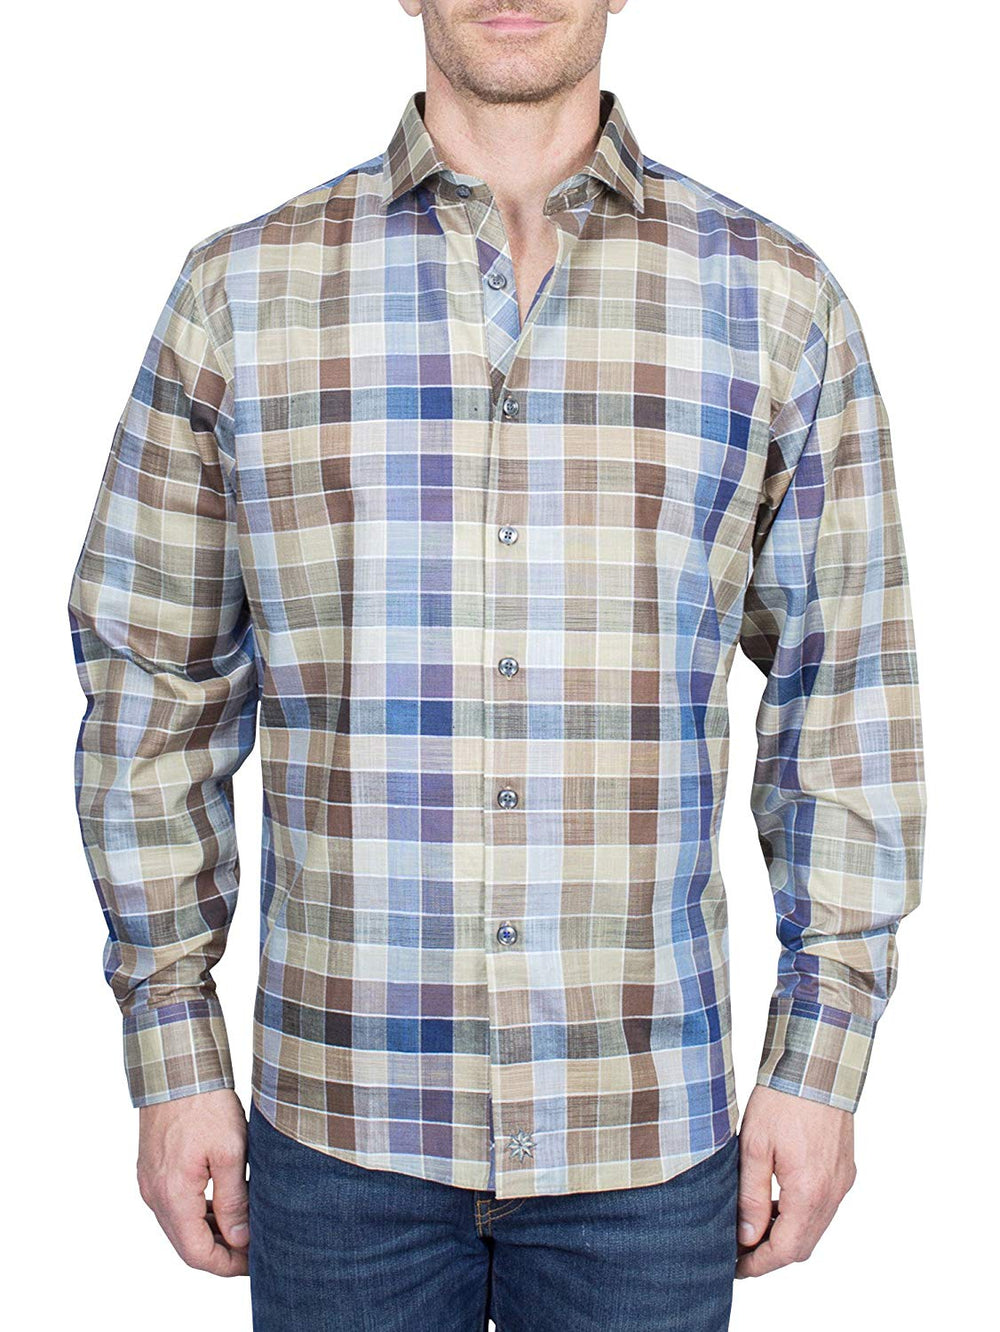 Thaddeus FRANKLIN Mens Long Sleeve Plaid Cotton Linen Blend Button Down Shirt, Blues and Taupe